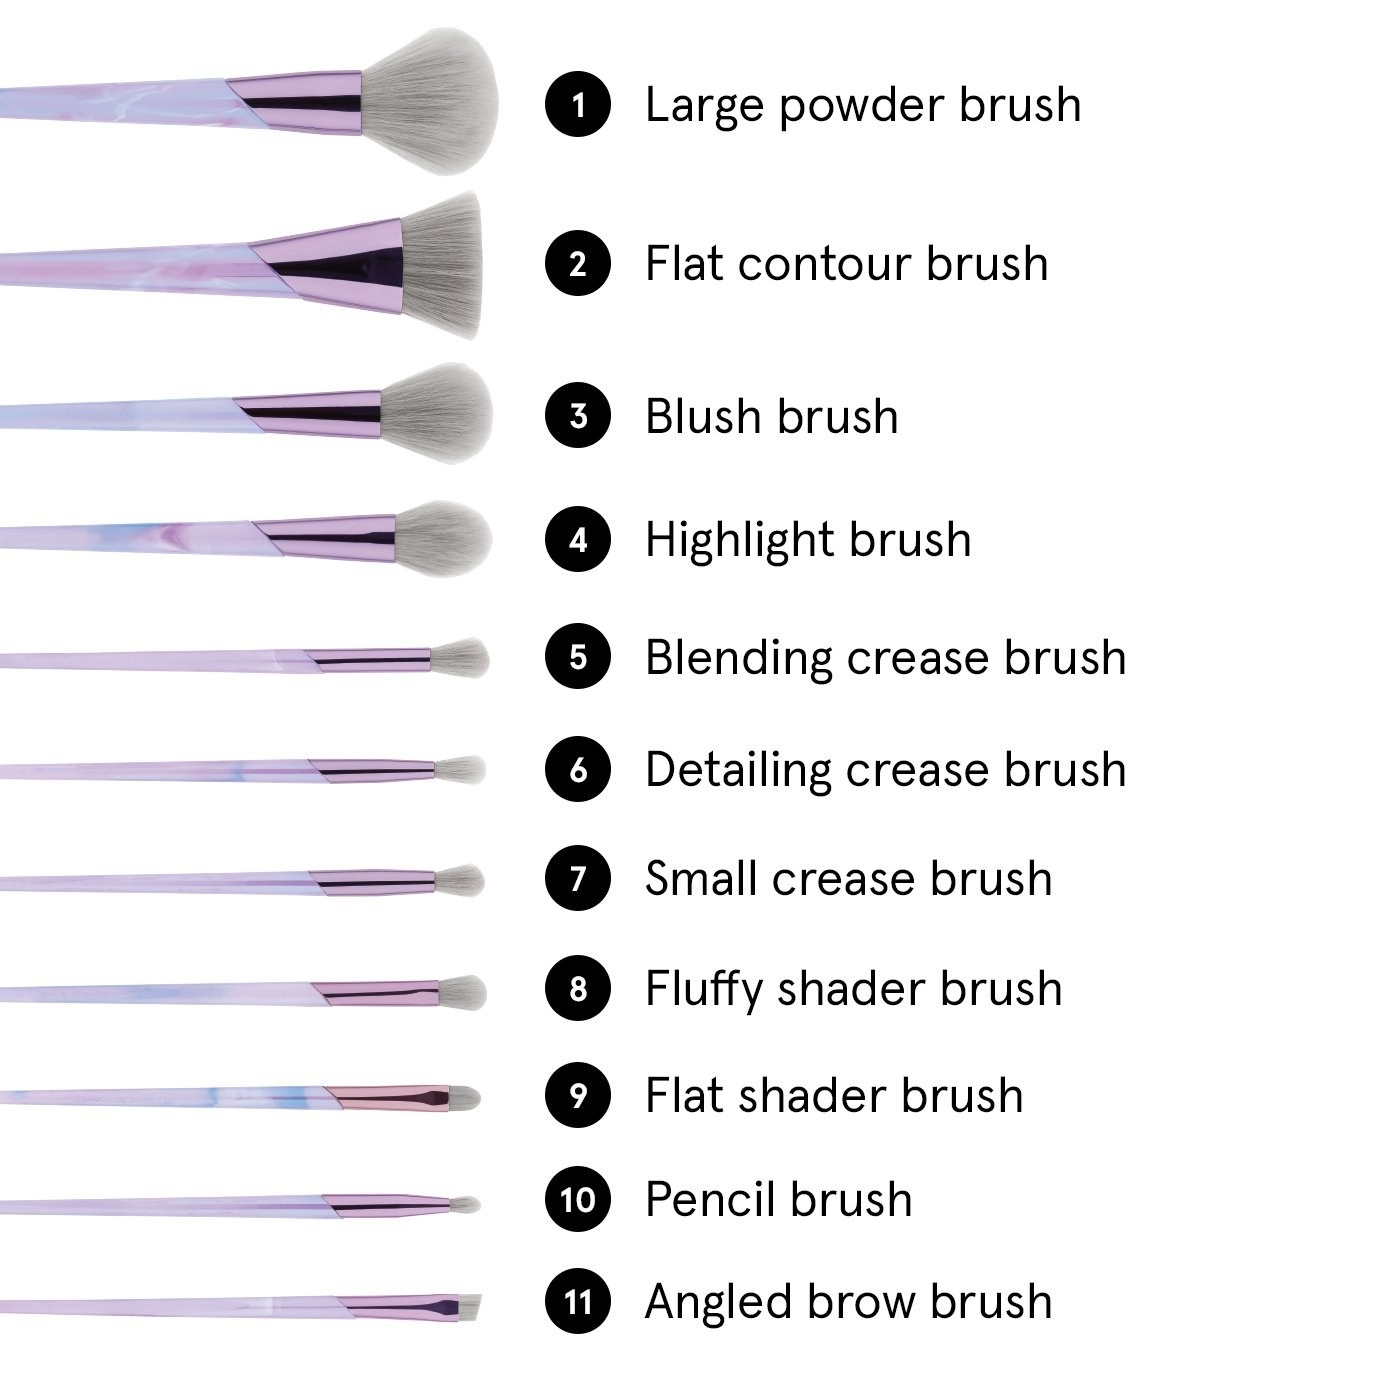 purple and metallic brush 11-piece brush set with labels of what each brush does